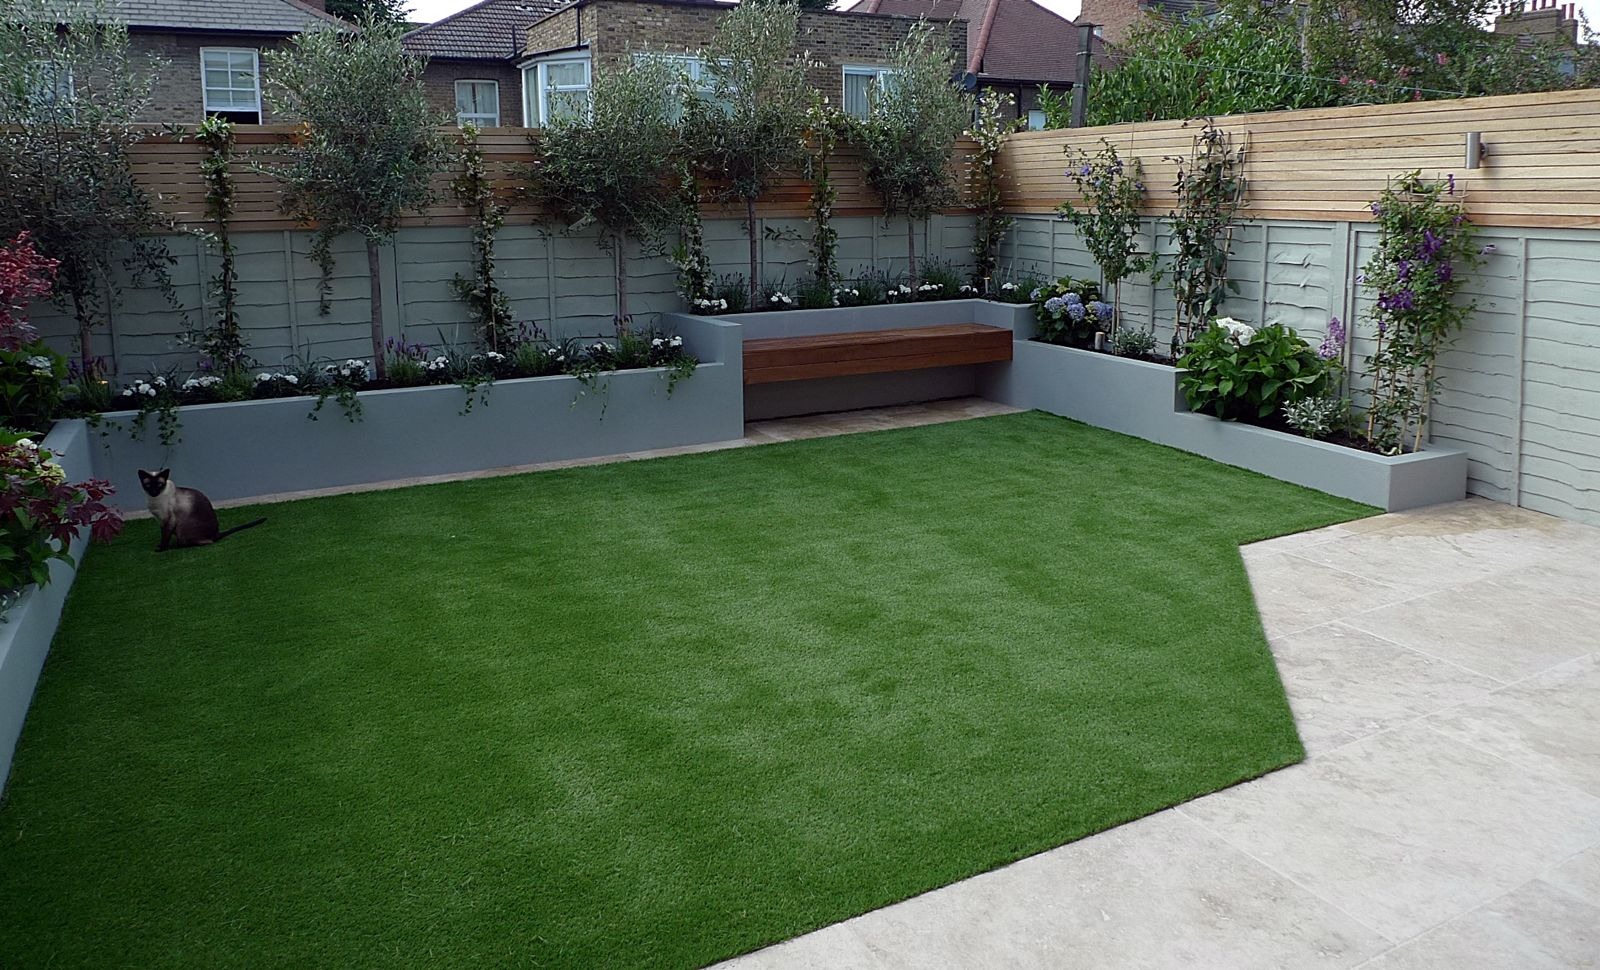 Artificial Grass Garden Designs another ideas for outdoor garden with acesturf artificial grass heveatech outdoor decking tell us Small Garden Design Raised Beds Artificial Grass Travertine